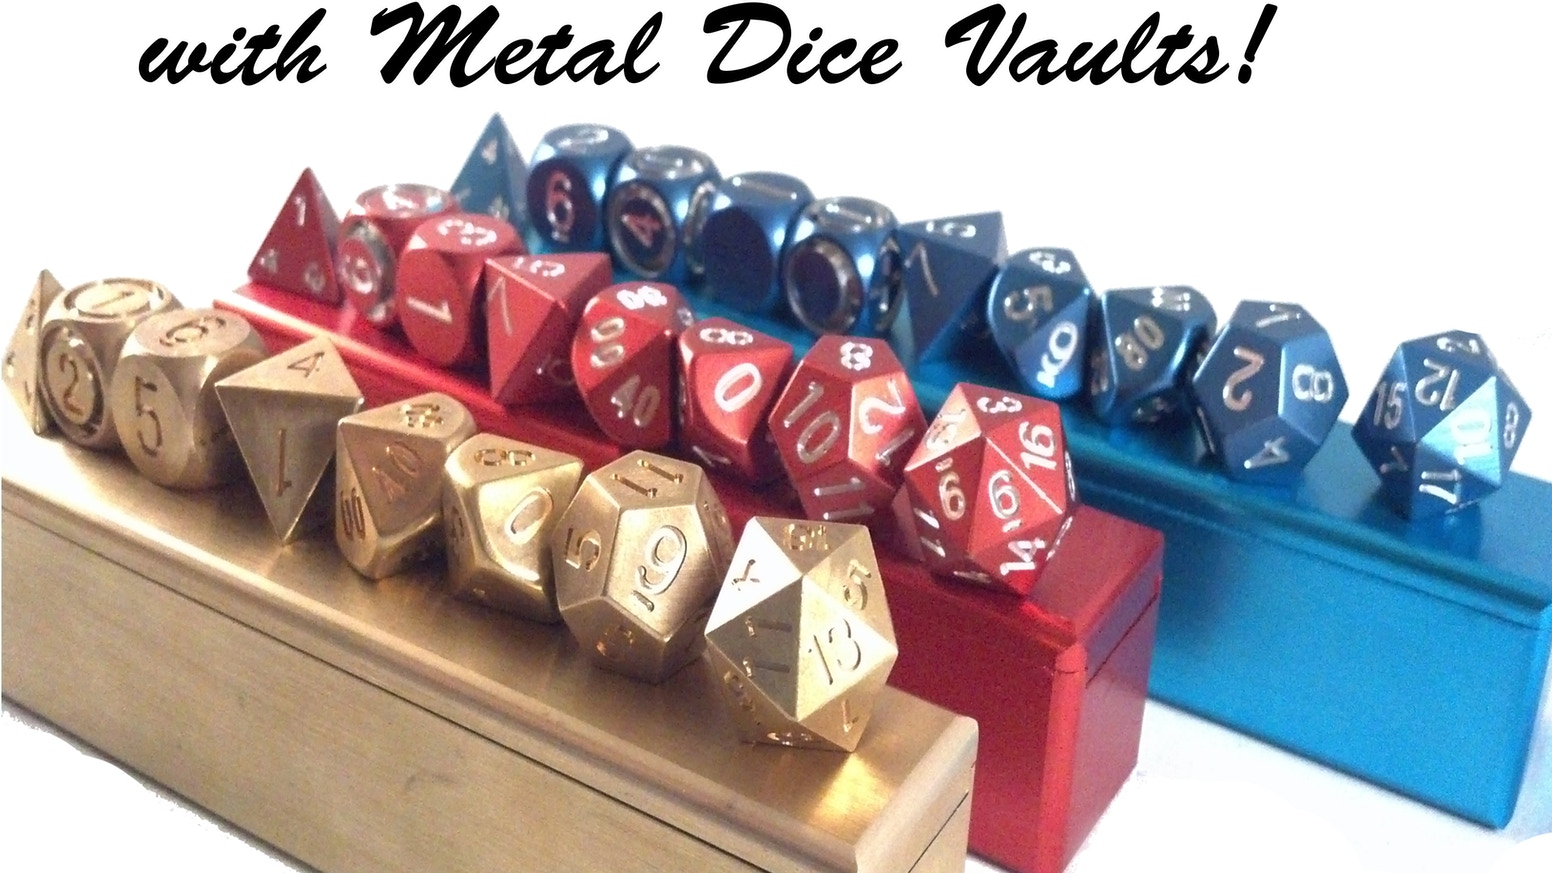 Metal Polyhedral Dice are Precision Machined to Perfection One at a Time! Get Yours in Anodized Aluminum, Brass, Copper, and Stainless Steel!